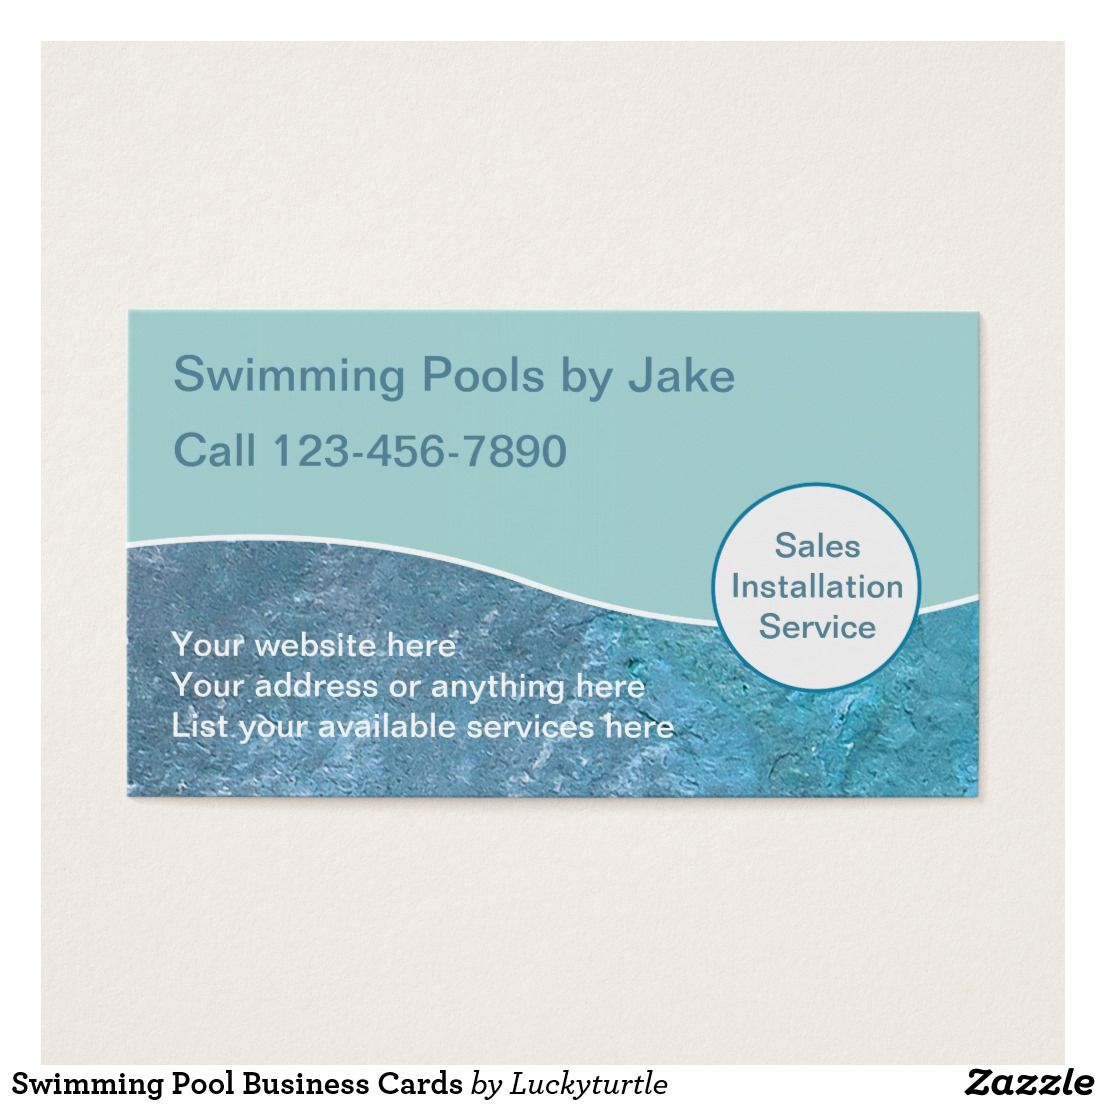 Swimming Pool Business Cards Nice Looking Business Card Designs